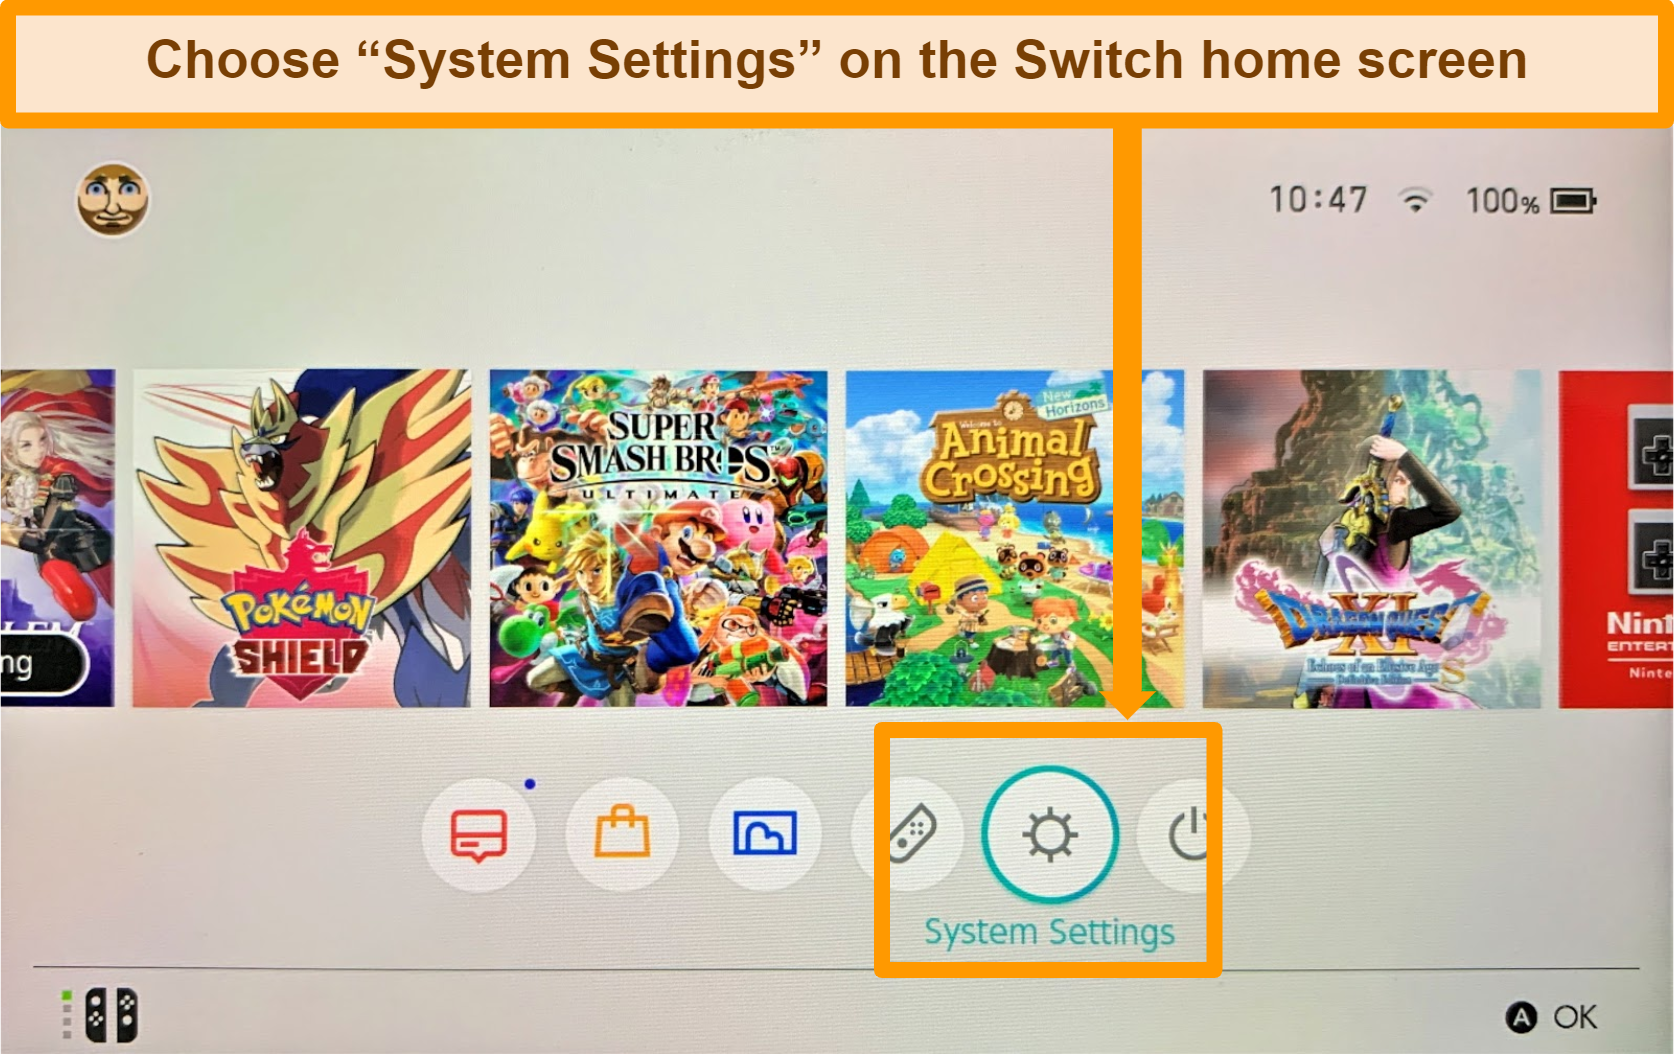 Screenshot of Nintendo Switch home screen with System Settings highlighted